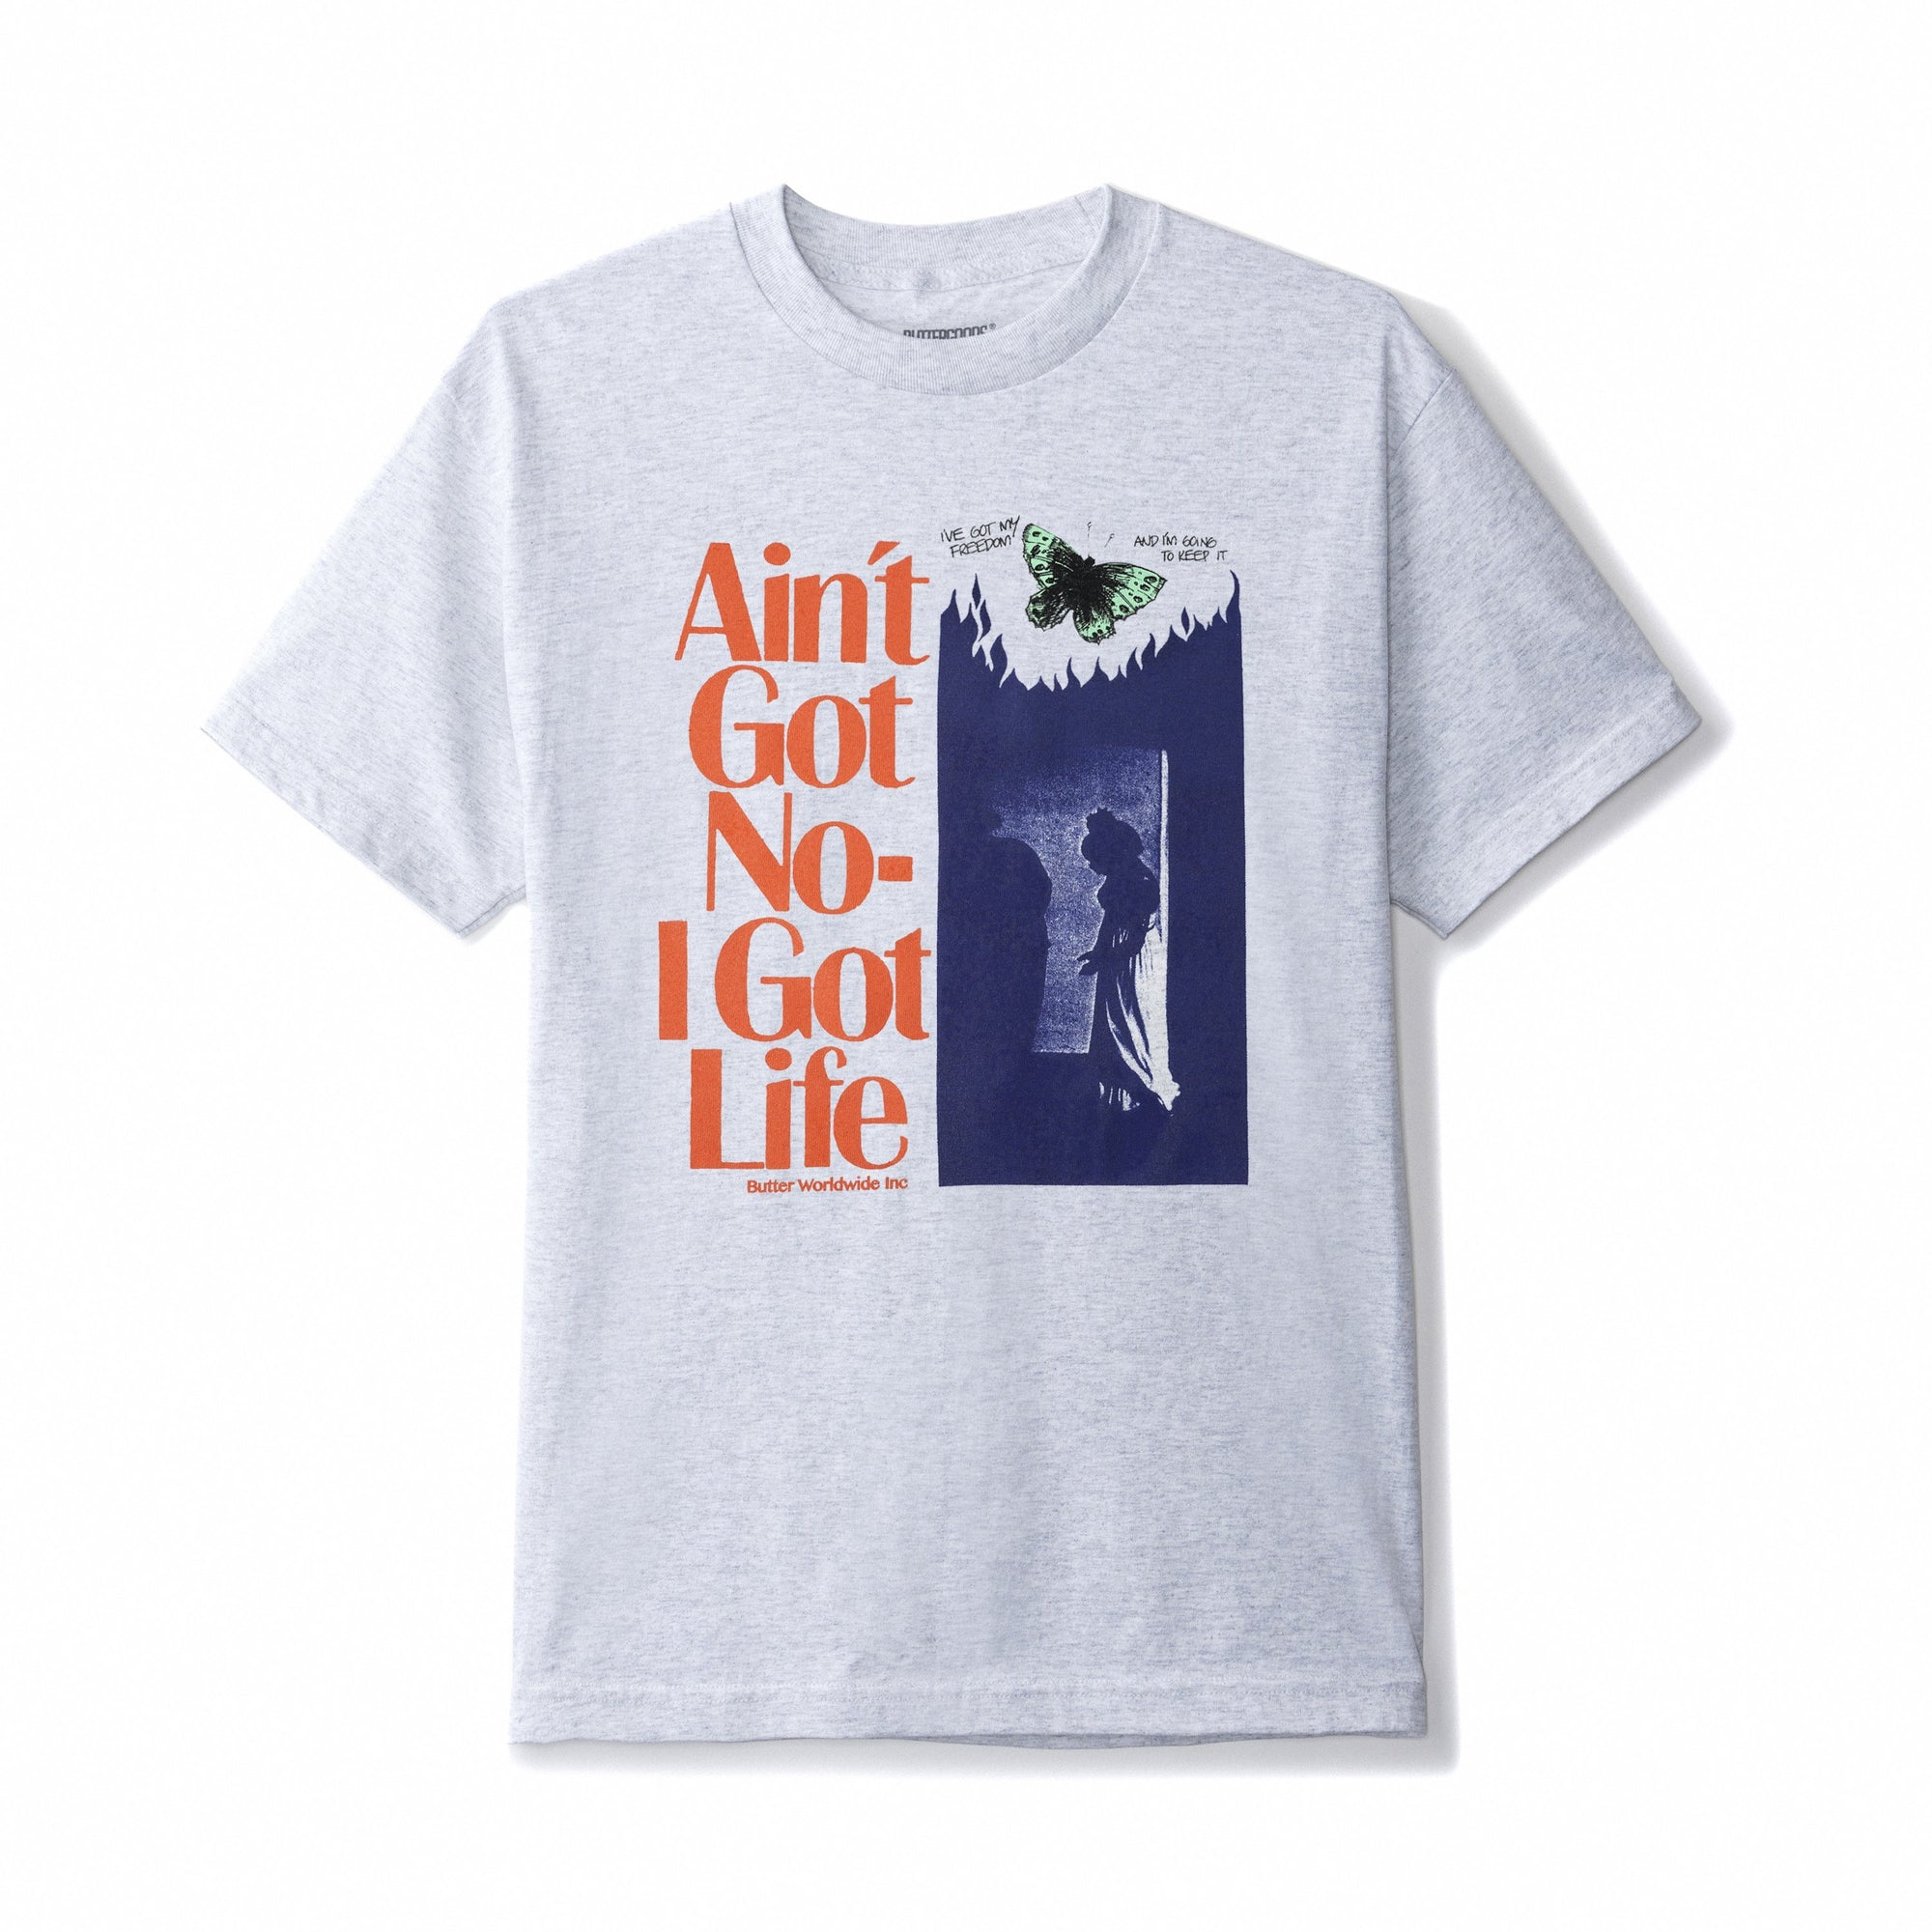 Butter Goods I Got Life Tee Product Photo #1